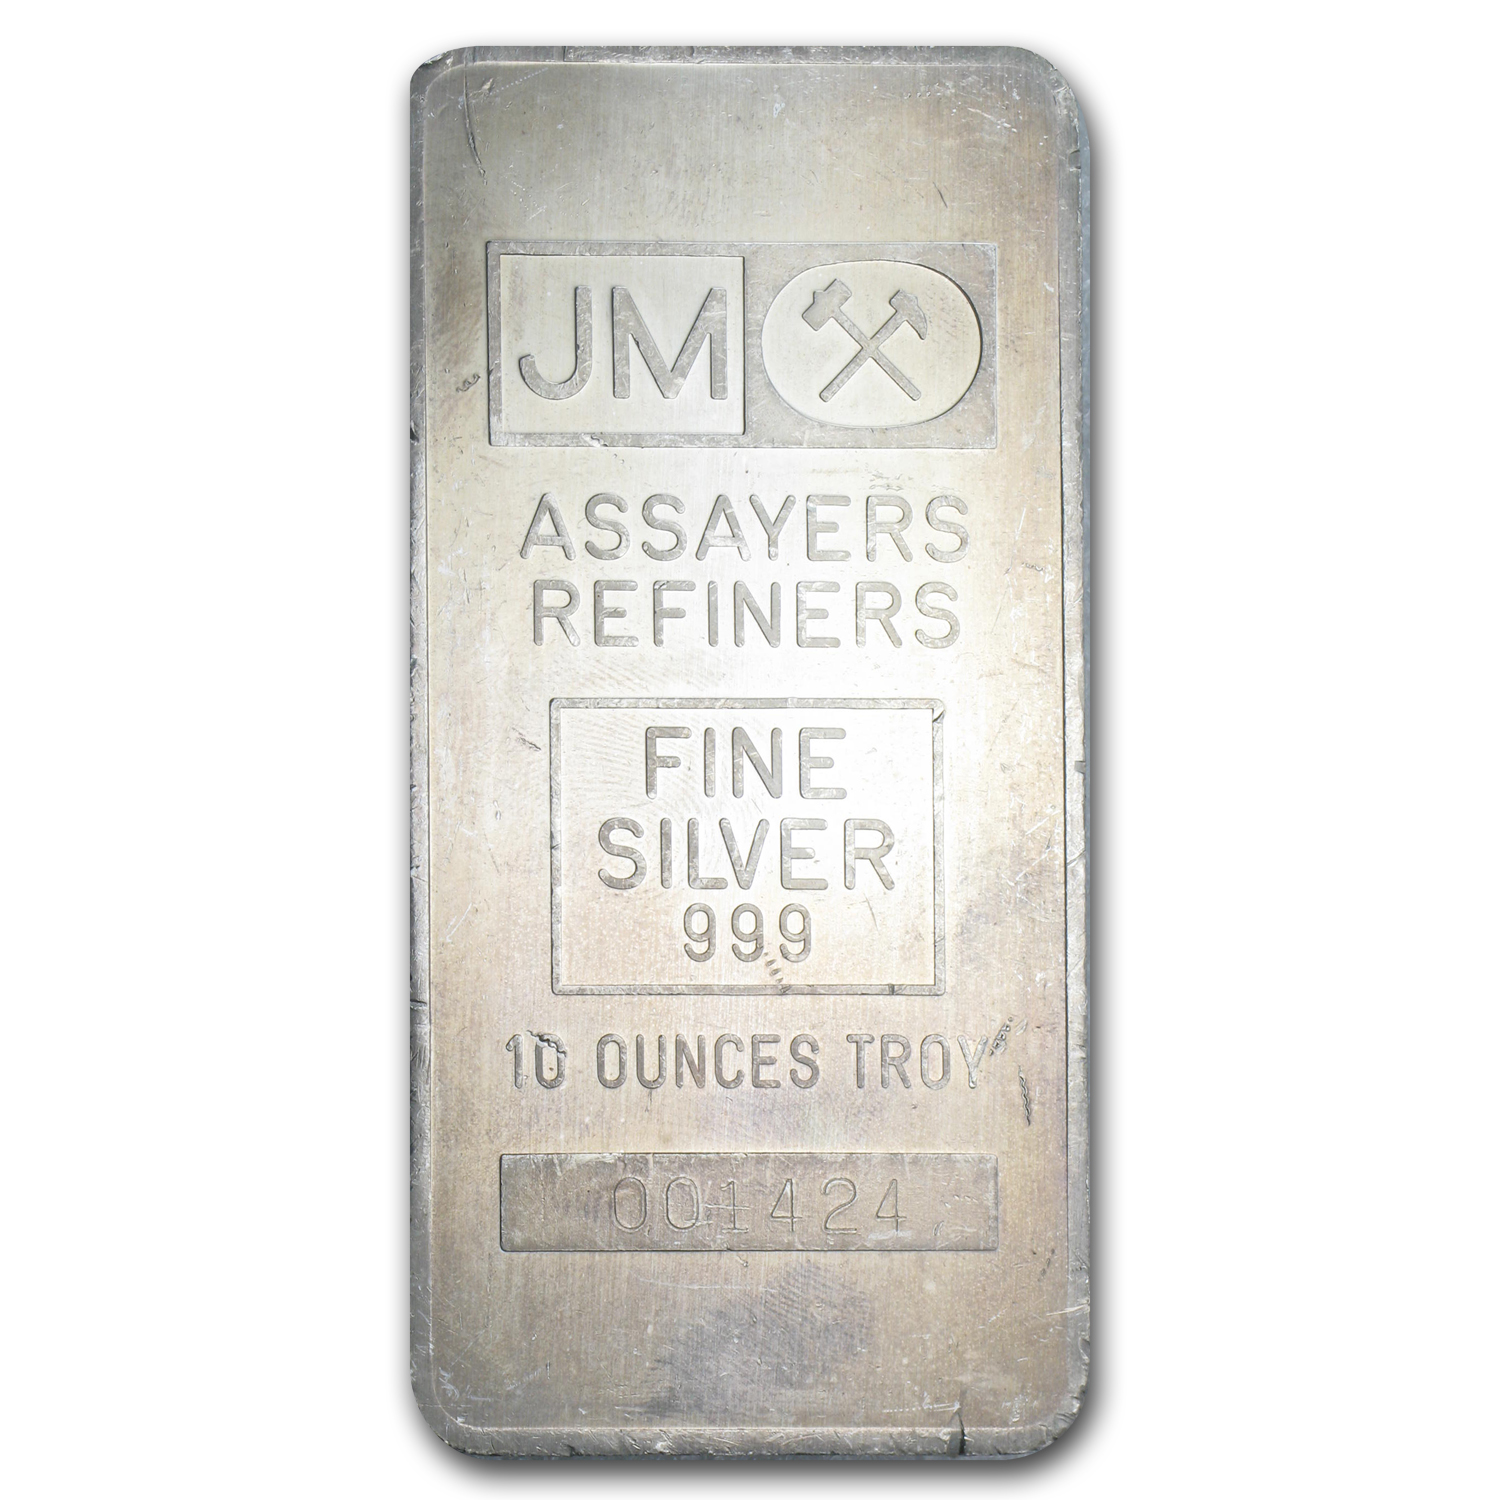 Buy 5 Oz Silver Bars from Money Metals